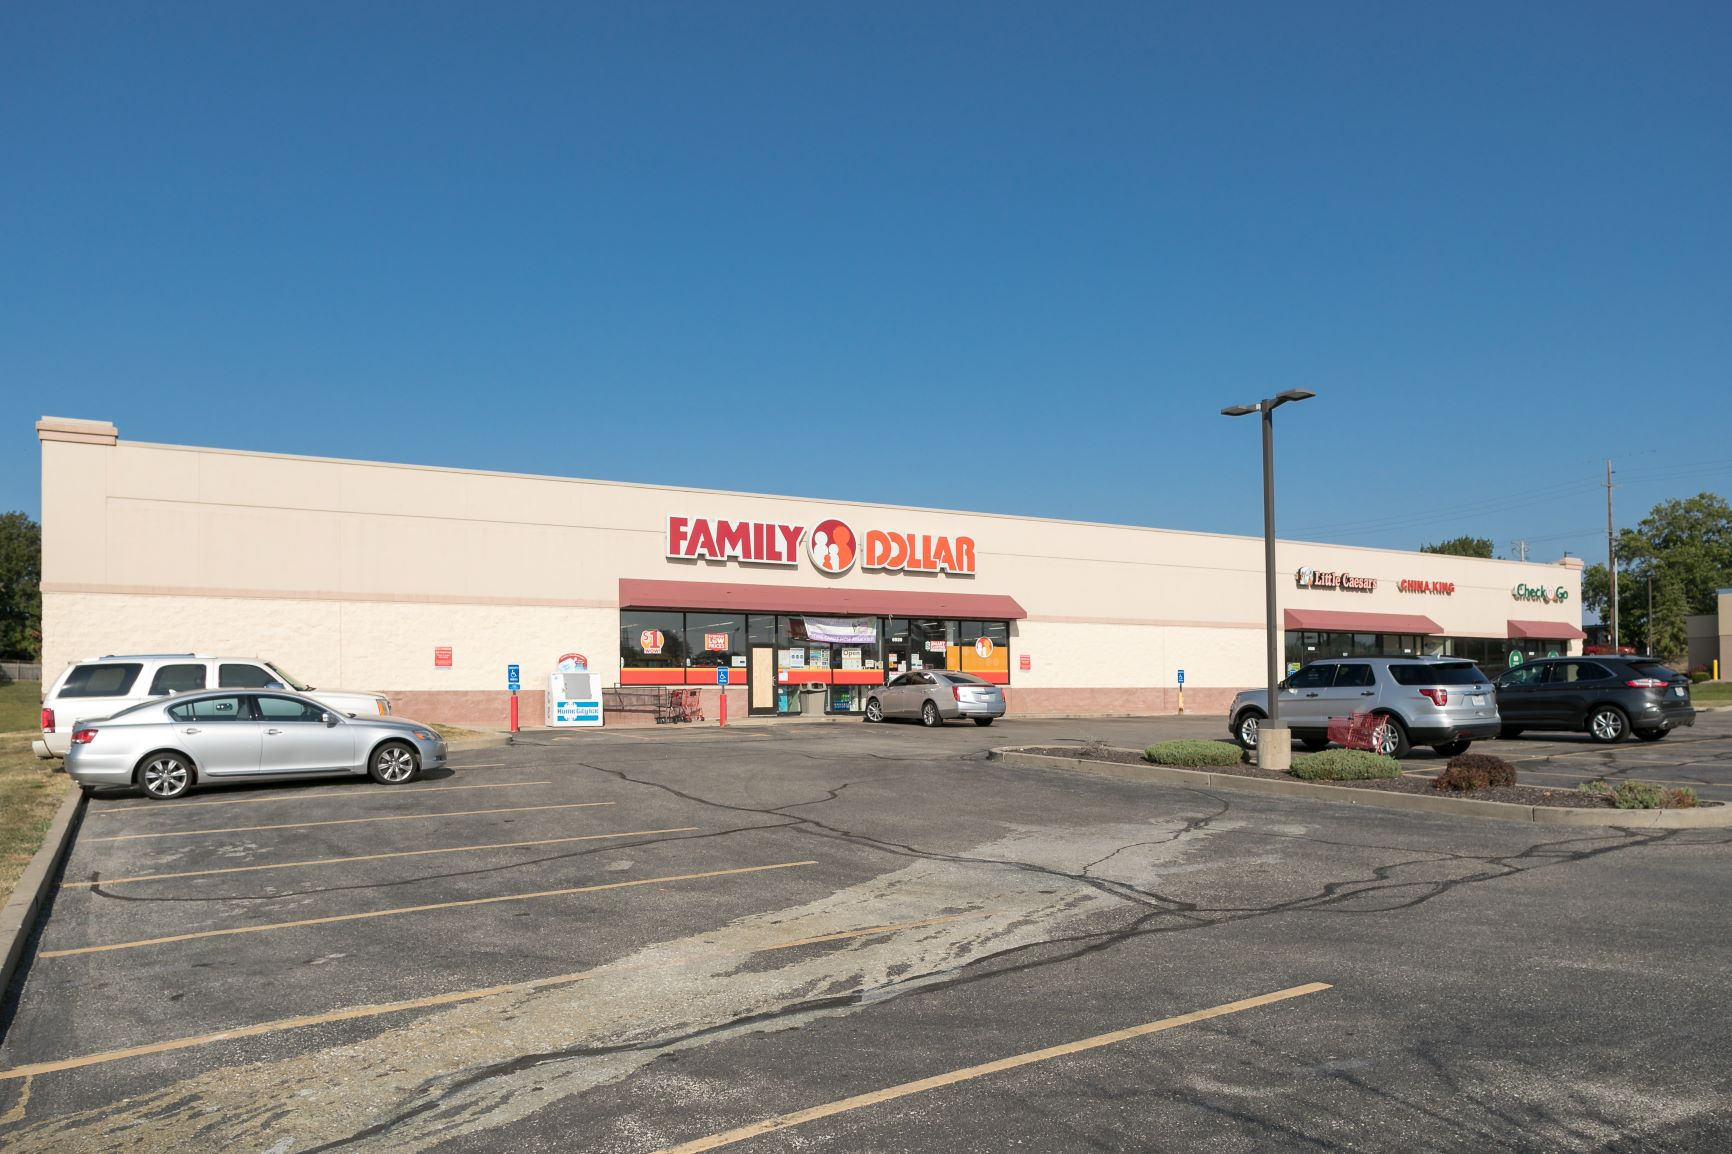 Mayfair Plaza - Family Dollar